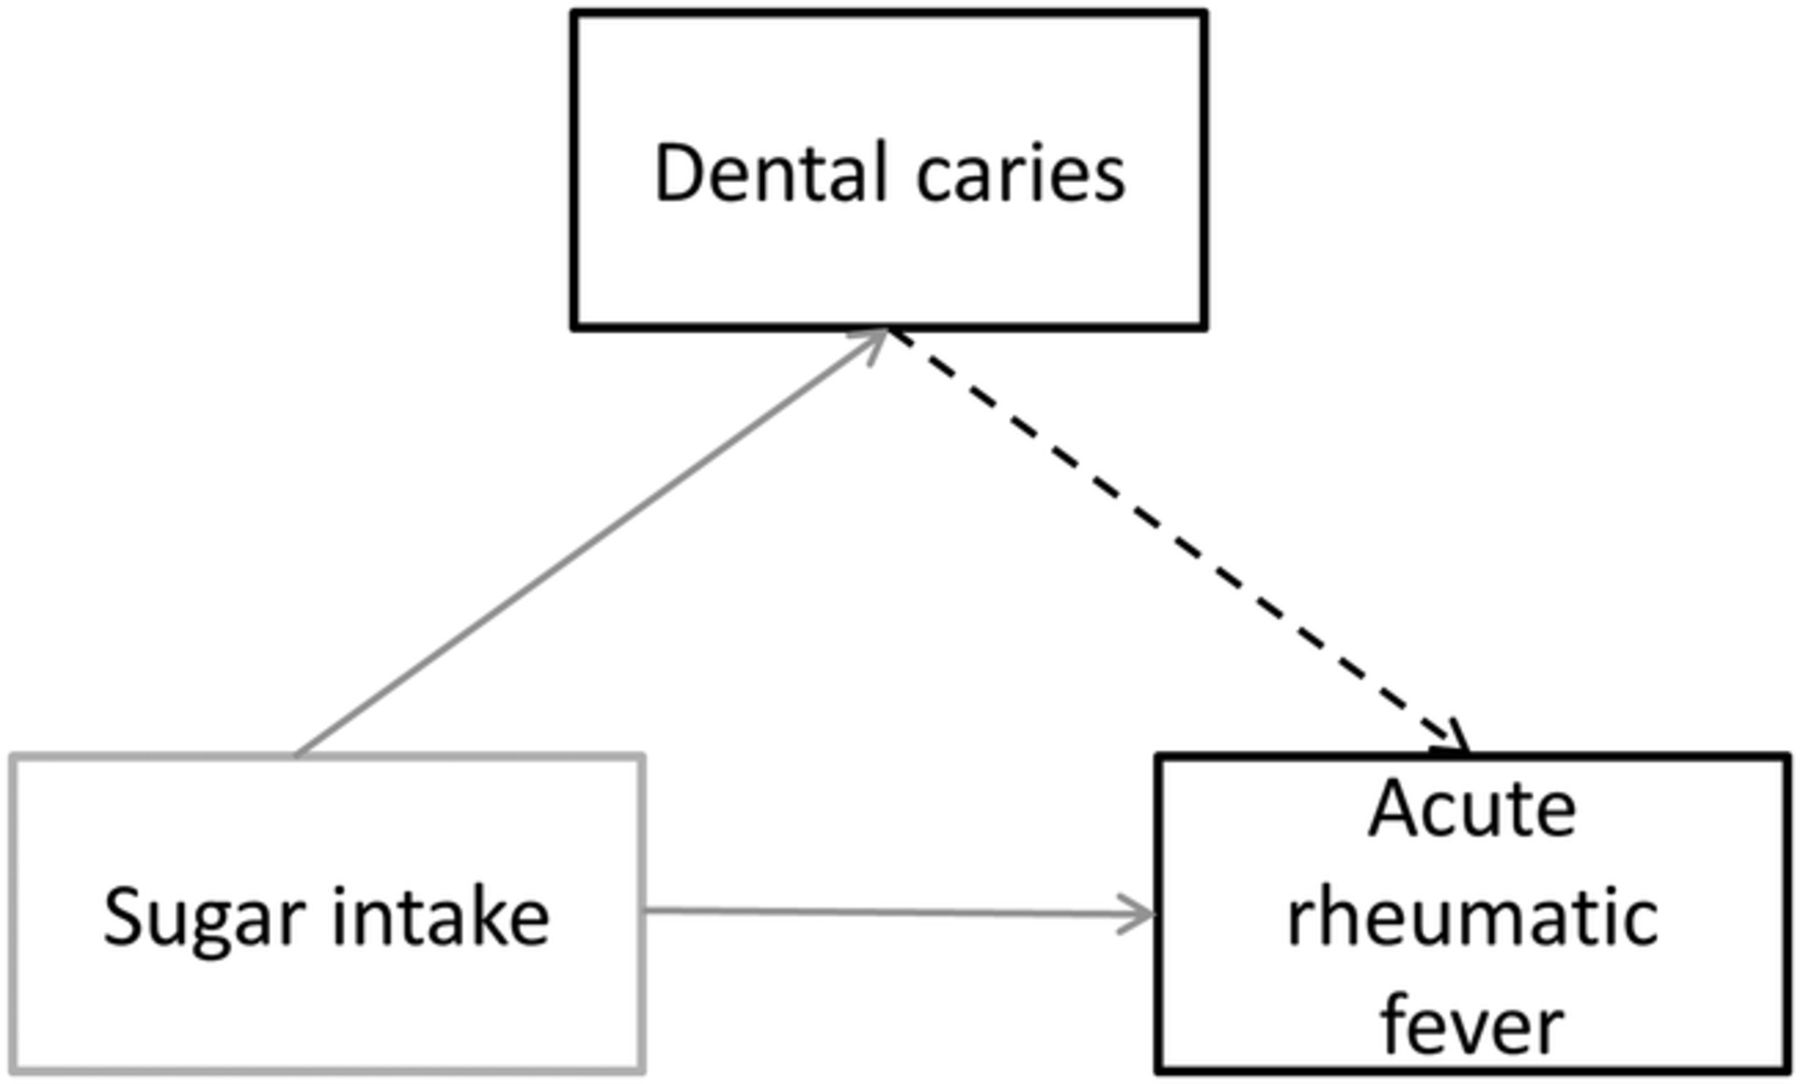 Sugar dental caries and the incidence of acute rheumatic fever a download figure pooptronica